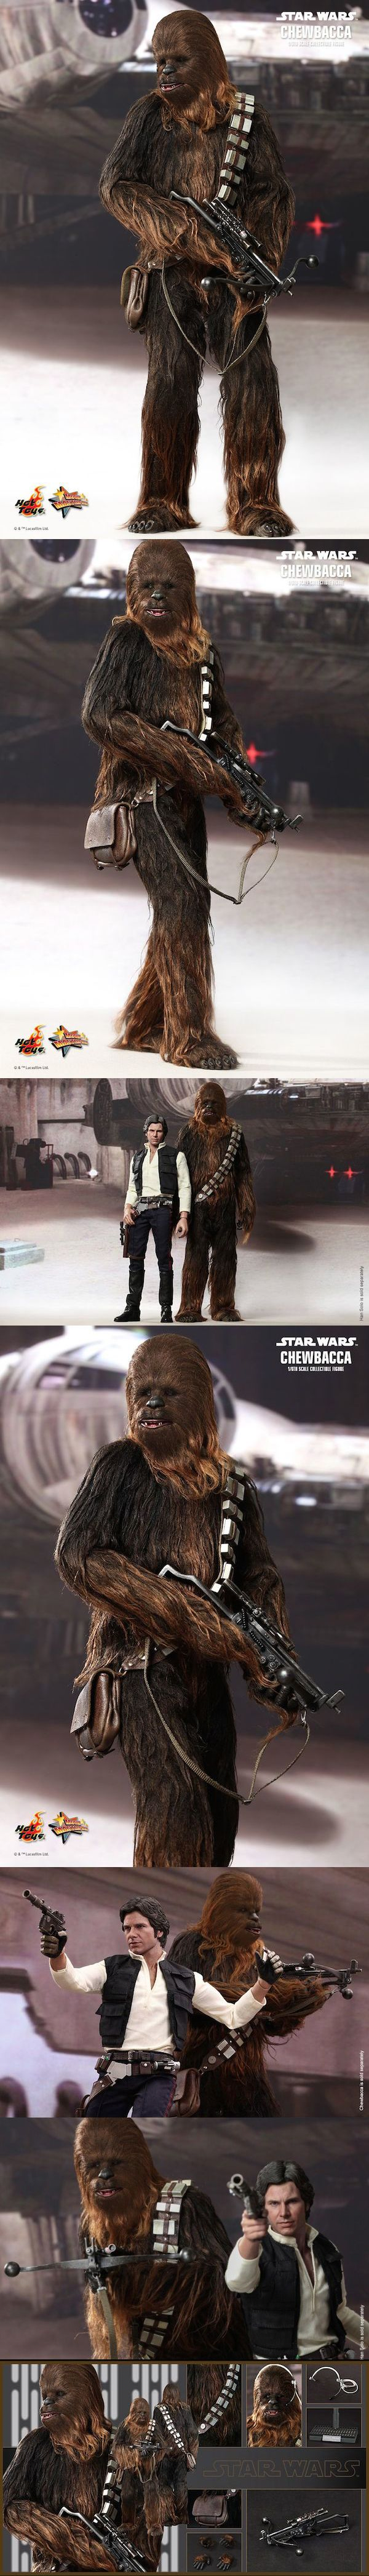 """The New Hot Toys Star Wars Chewbacca Figures is """"OMG! OMG! OMG! I MUST HAVE ONE! """"  Read more at http://nerdapproved.com/approved-products/the-new-hot-toys-star-wars-han-solo-and-chewbacca-figures-are-simply-incredible/#T0IVBoJGx8vkc7Ws.99"""